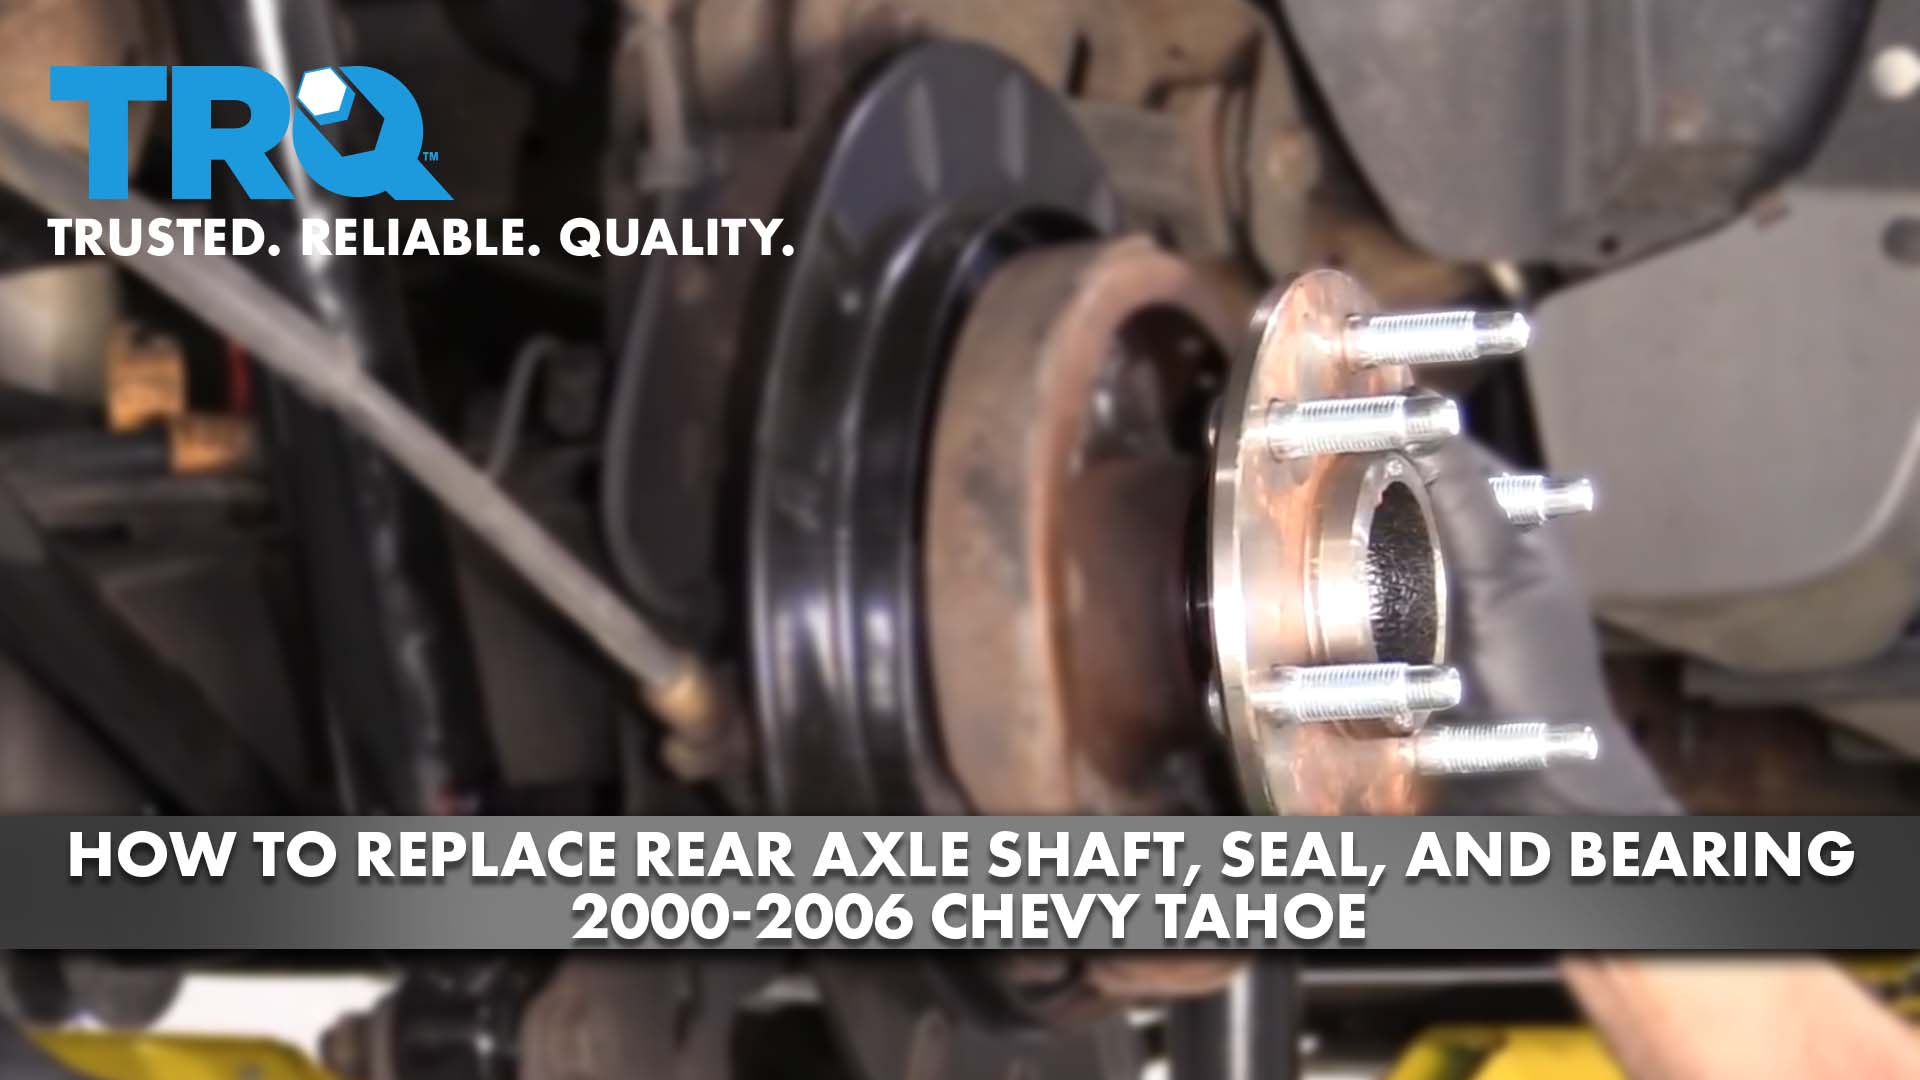 How to Replace Rear Axle Shaft, Seal, and Bearing 2000-06 Chevy Tahoe